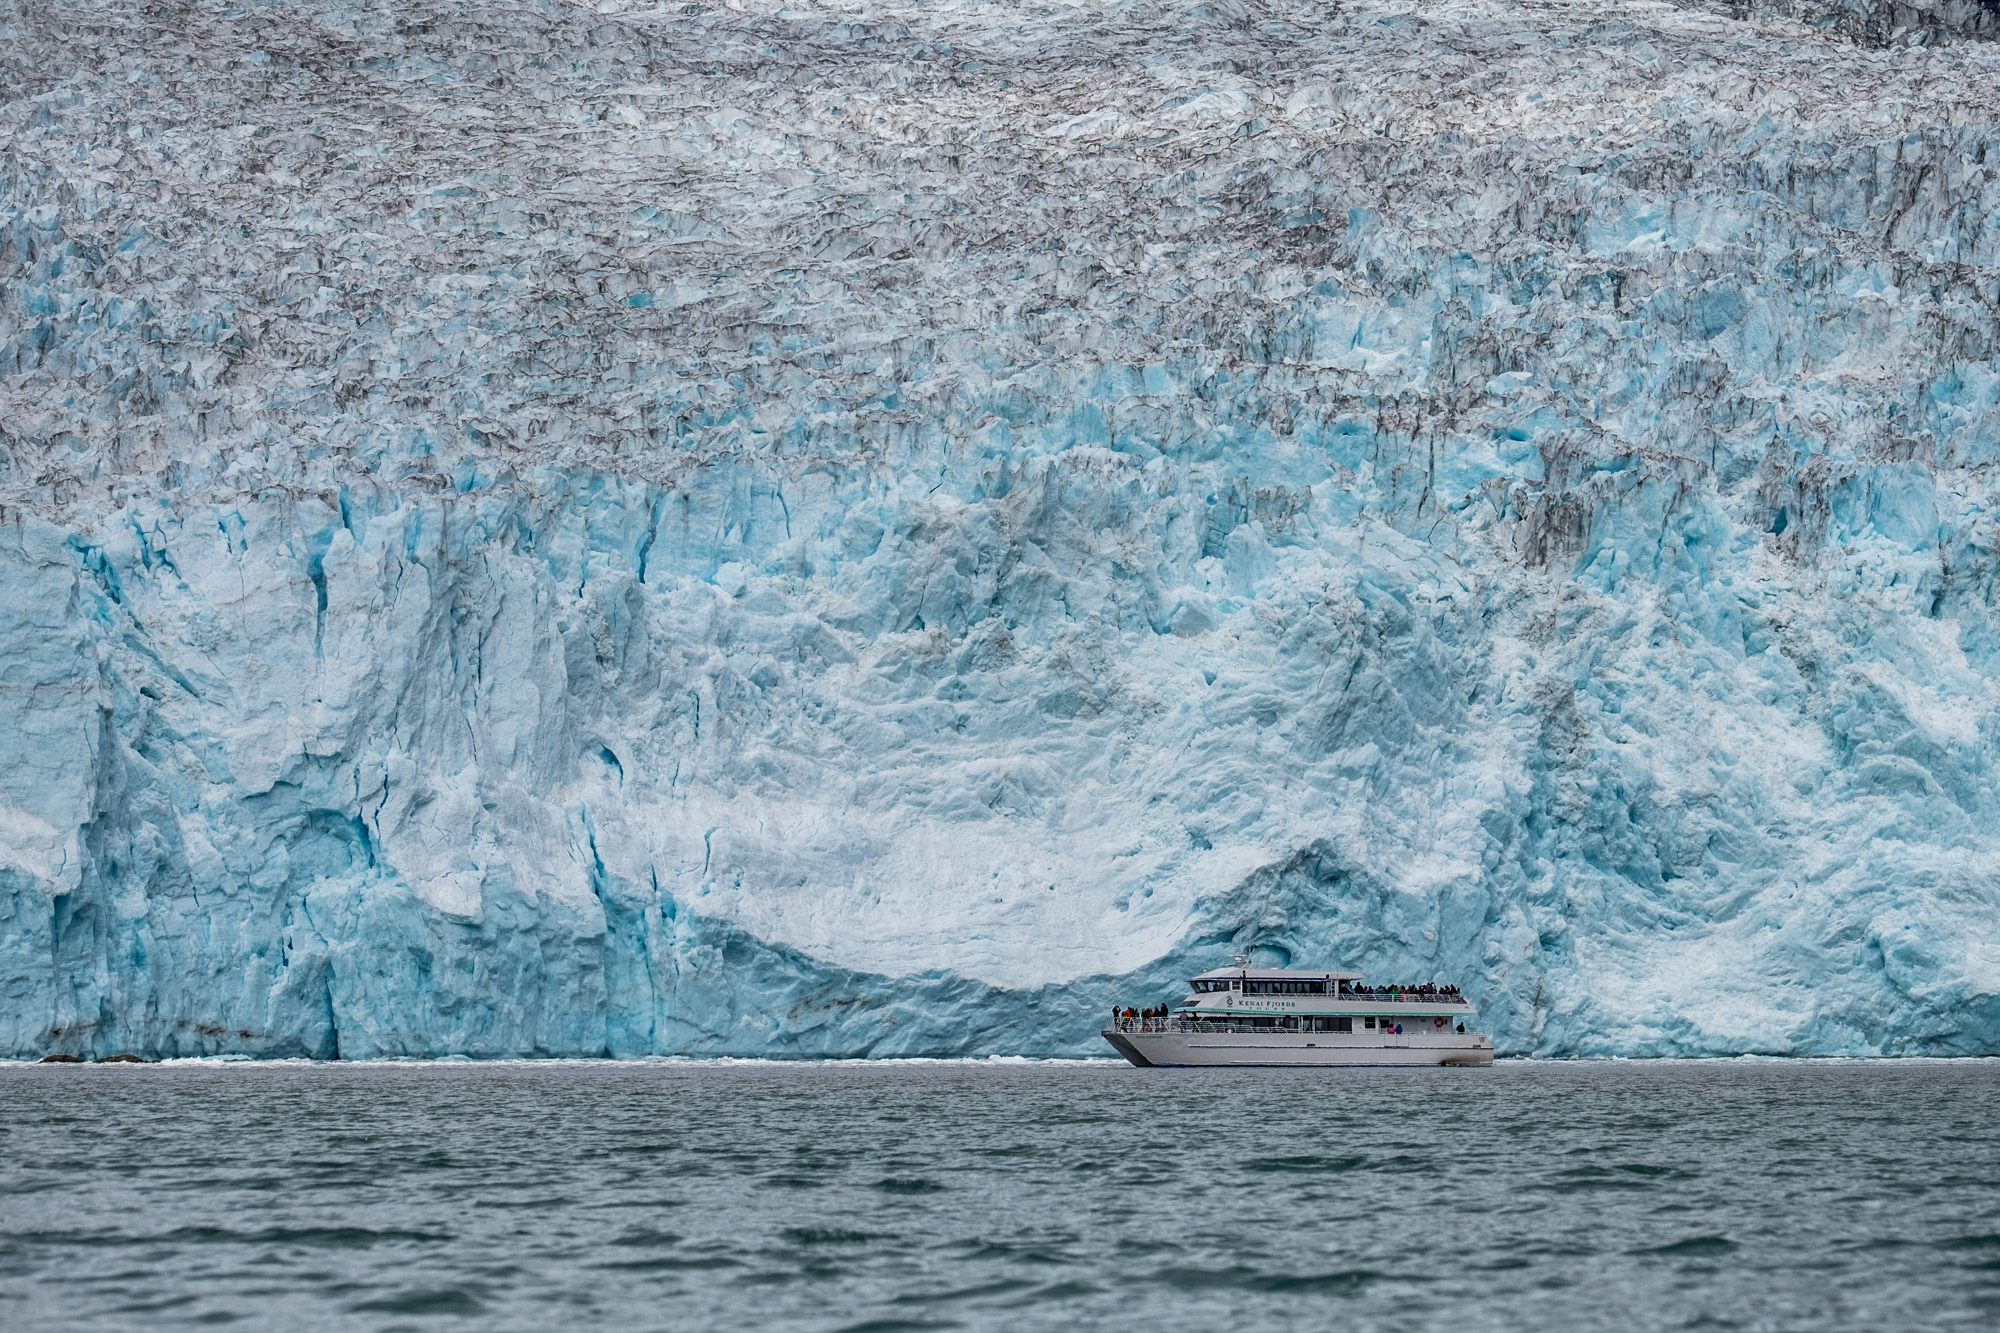 A cruise boat is dwarfed by the massive glacier.